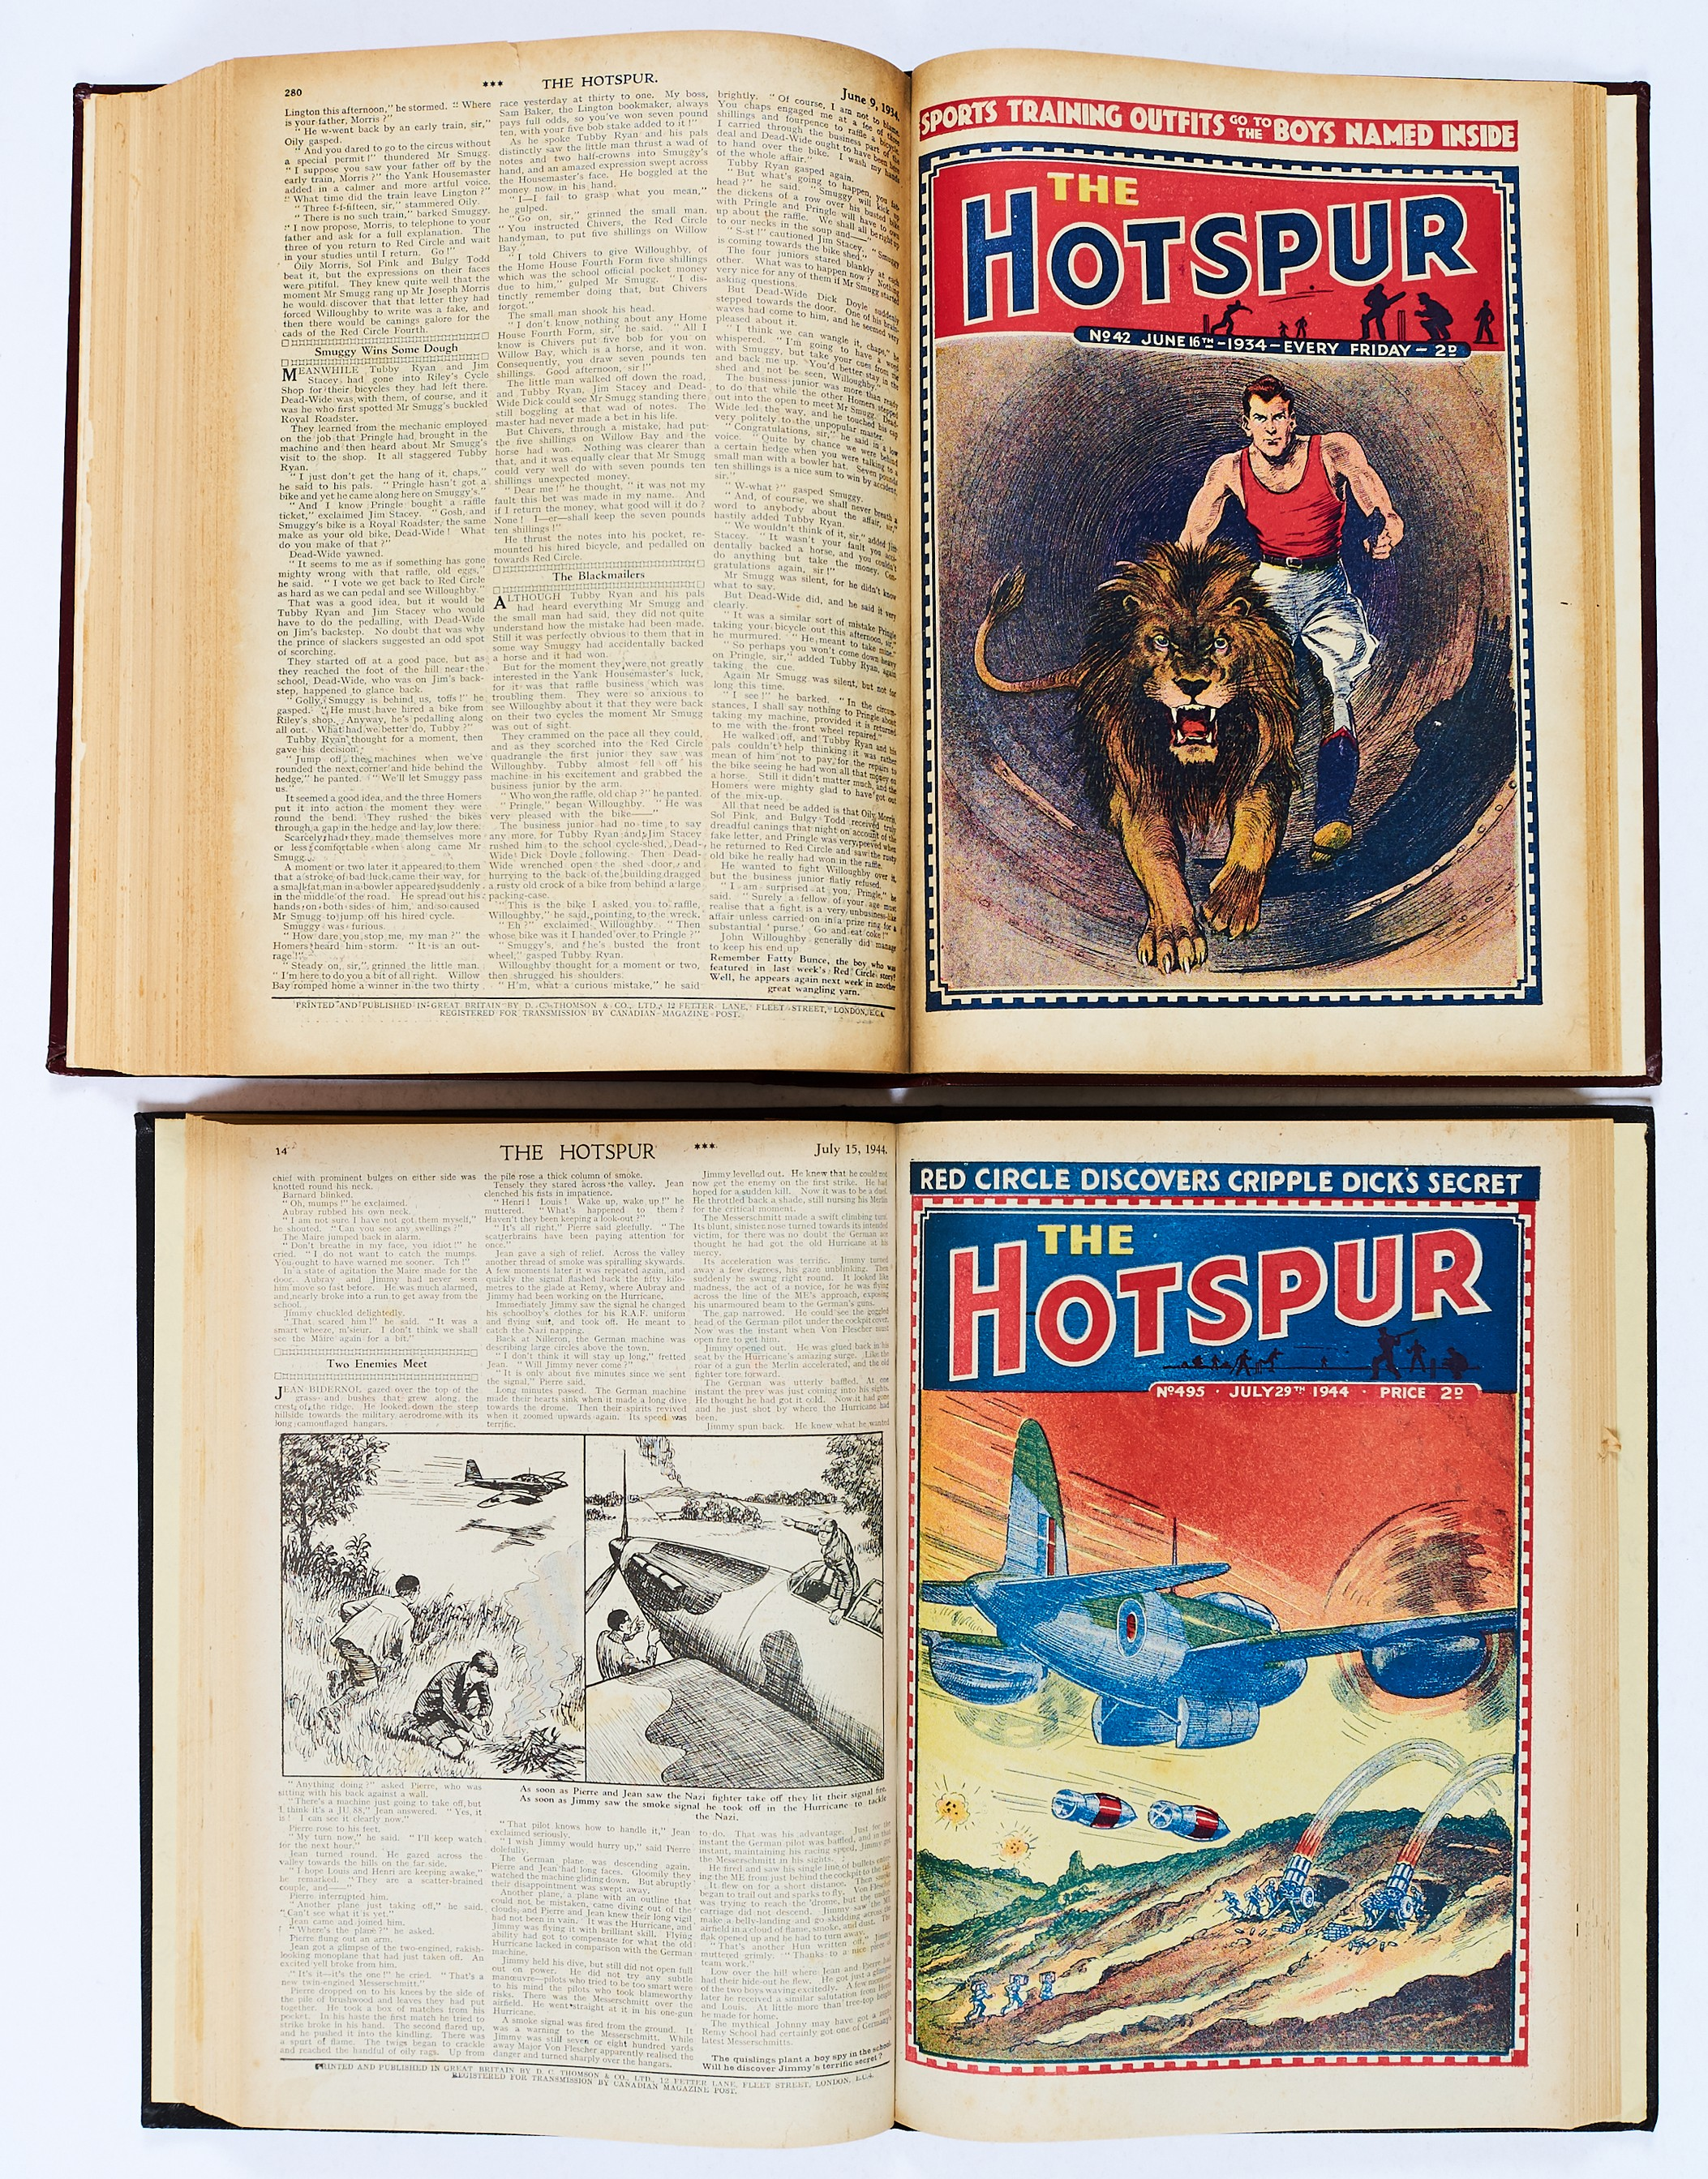 Lot 11 - Hotspur (Jan-Jun 1934) 19-44. In half-year bound volume. With Hotspur (1944) 480-506 complete year